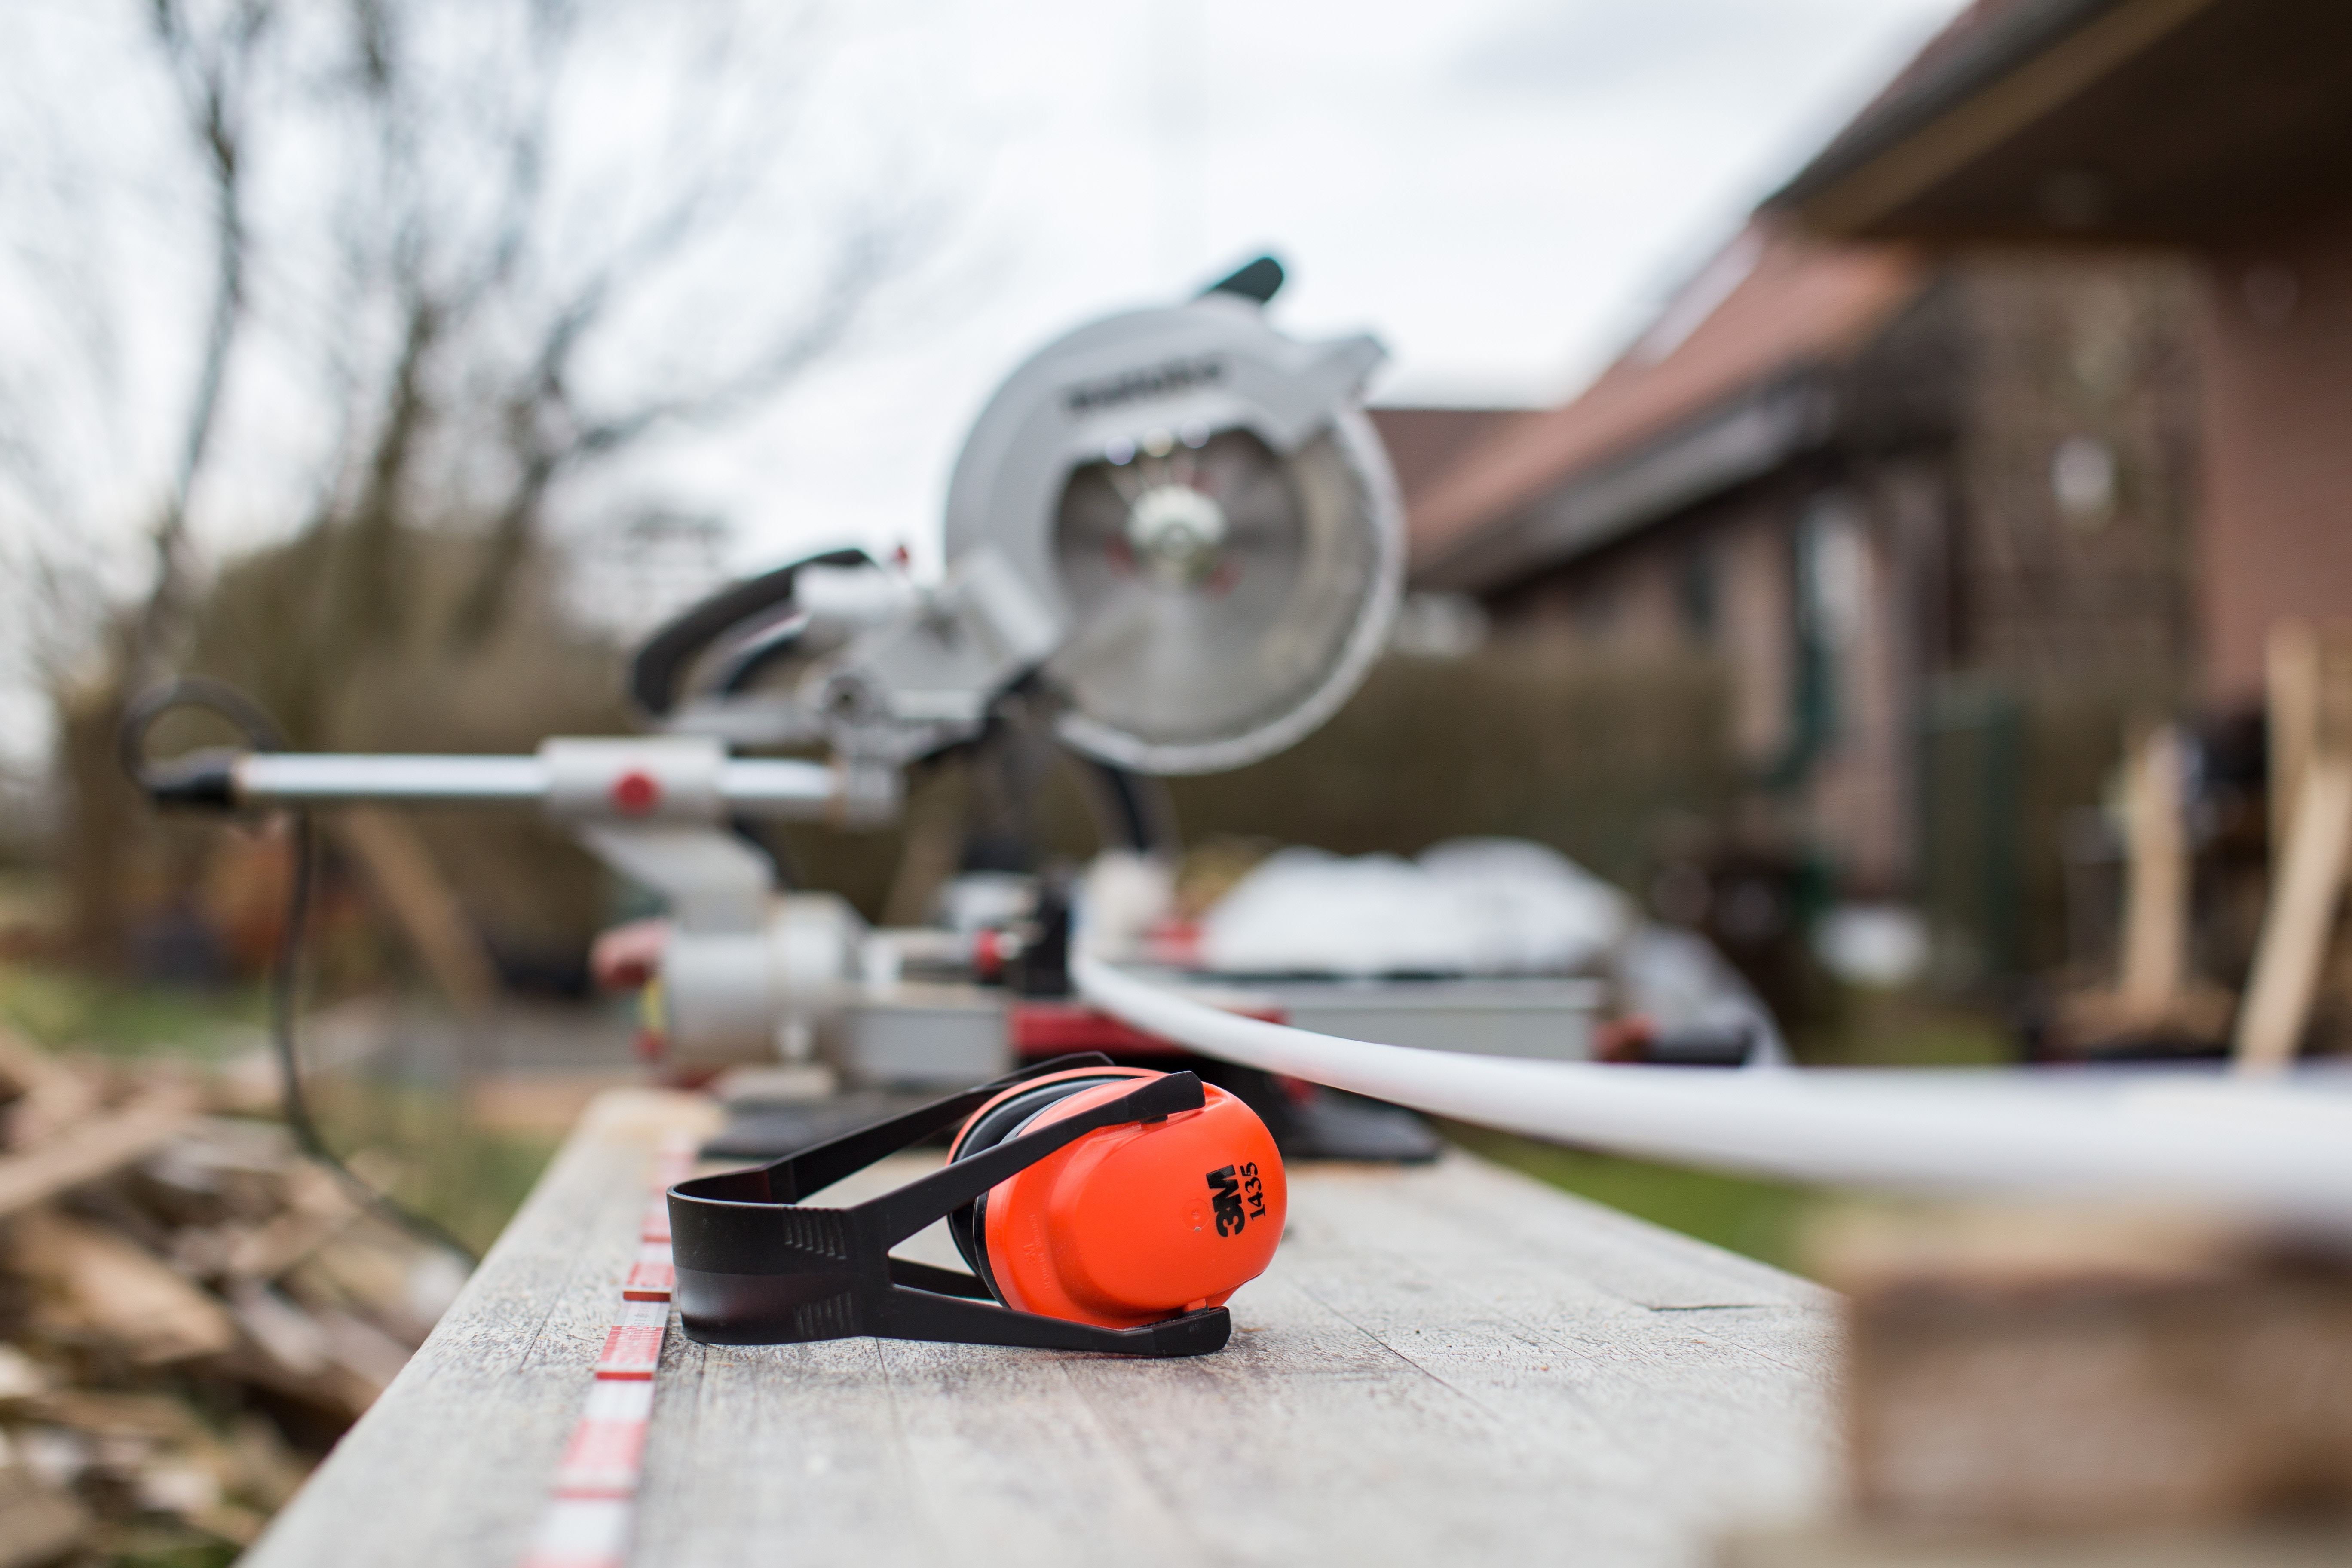 Protective headphones and chainsaw